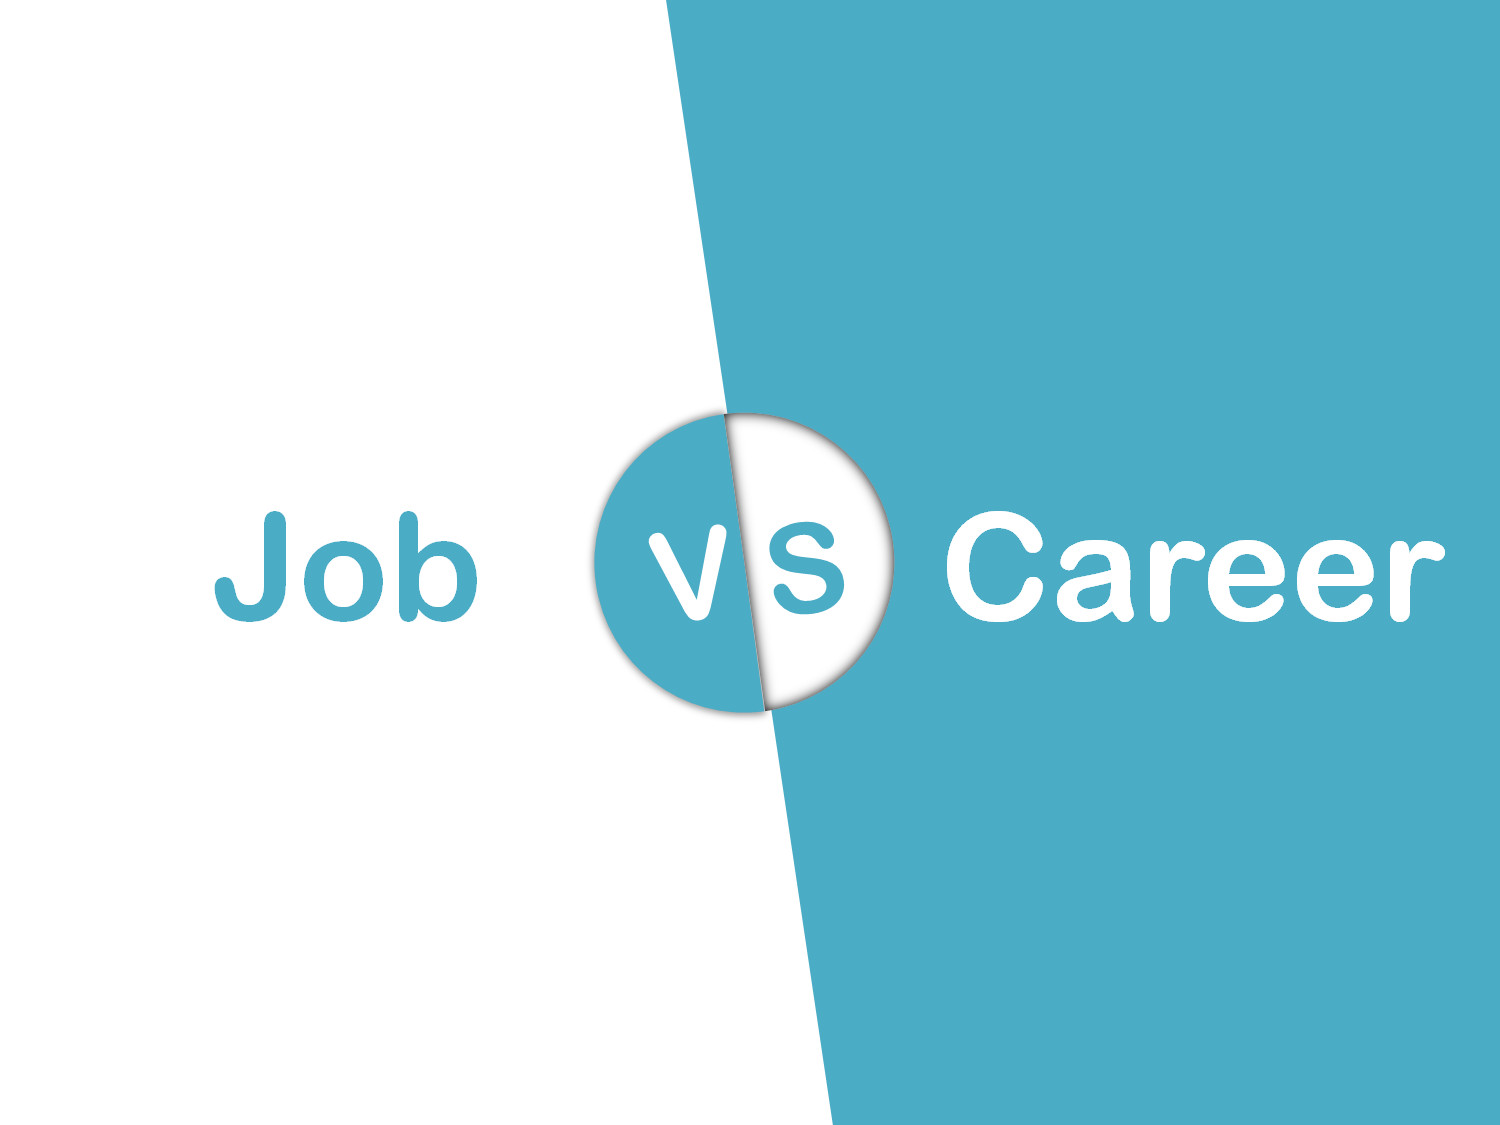 job vs career infographic mytechlogy